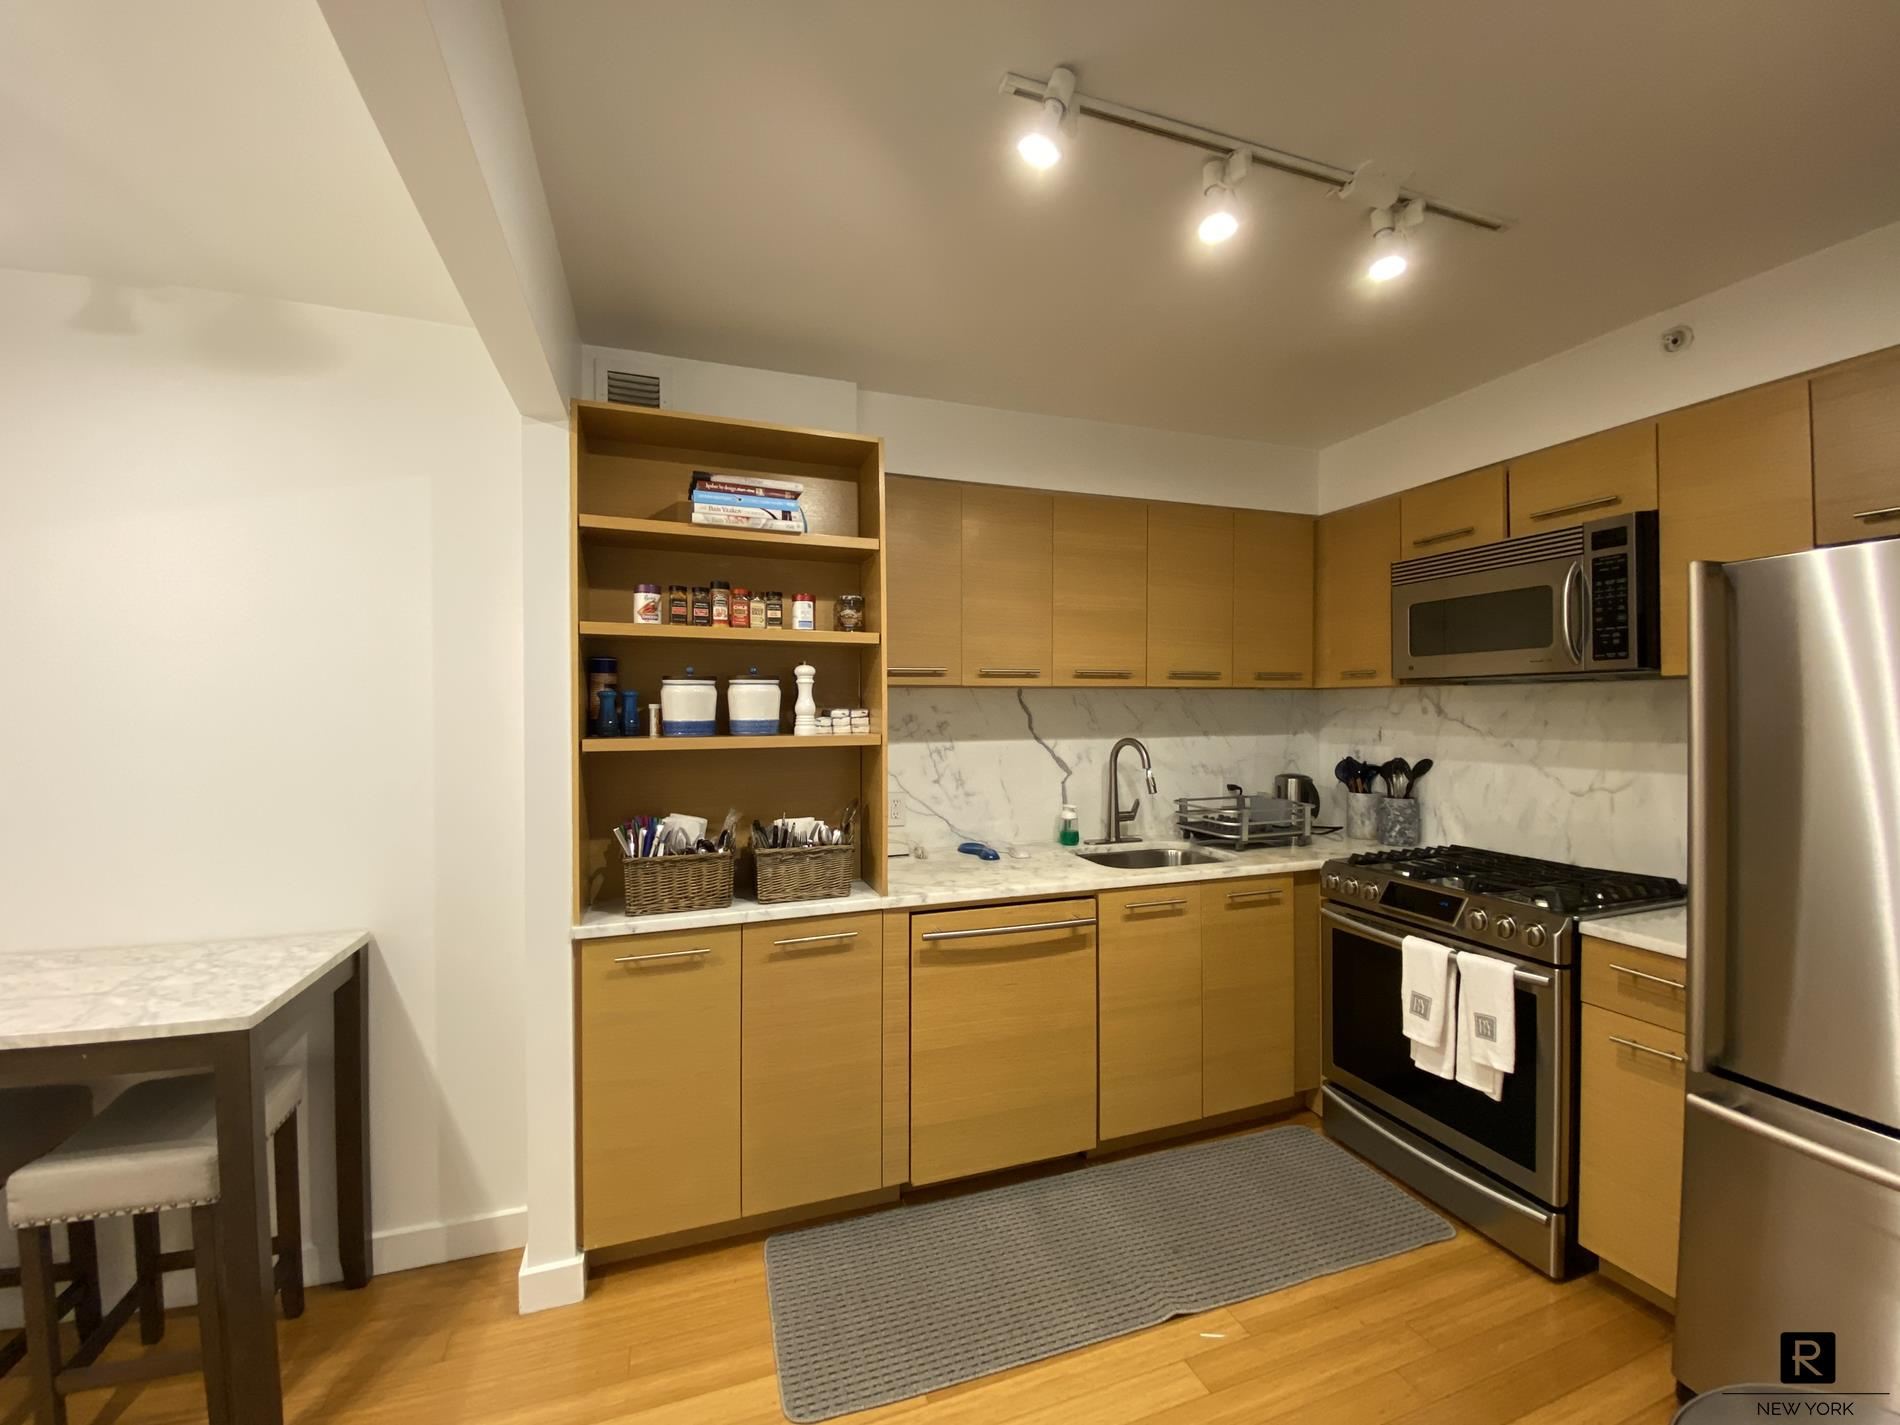 Apartment for sale at 100 West 39th Street, Apt 41-E